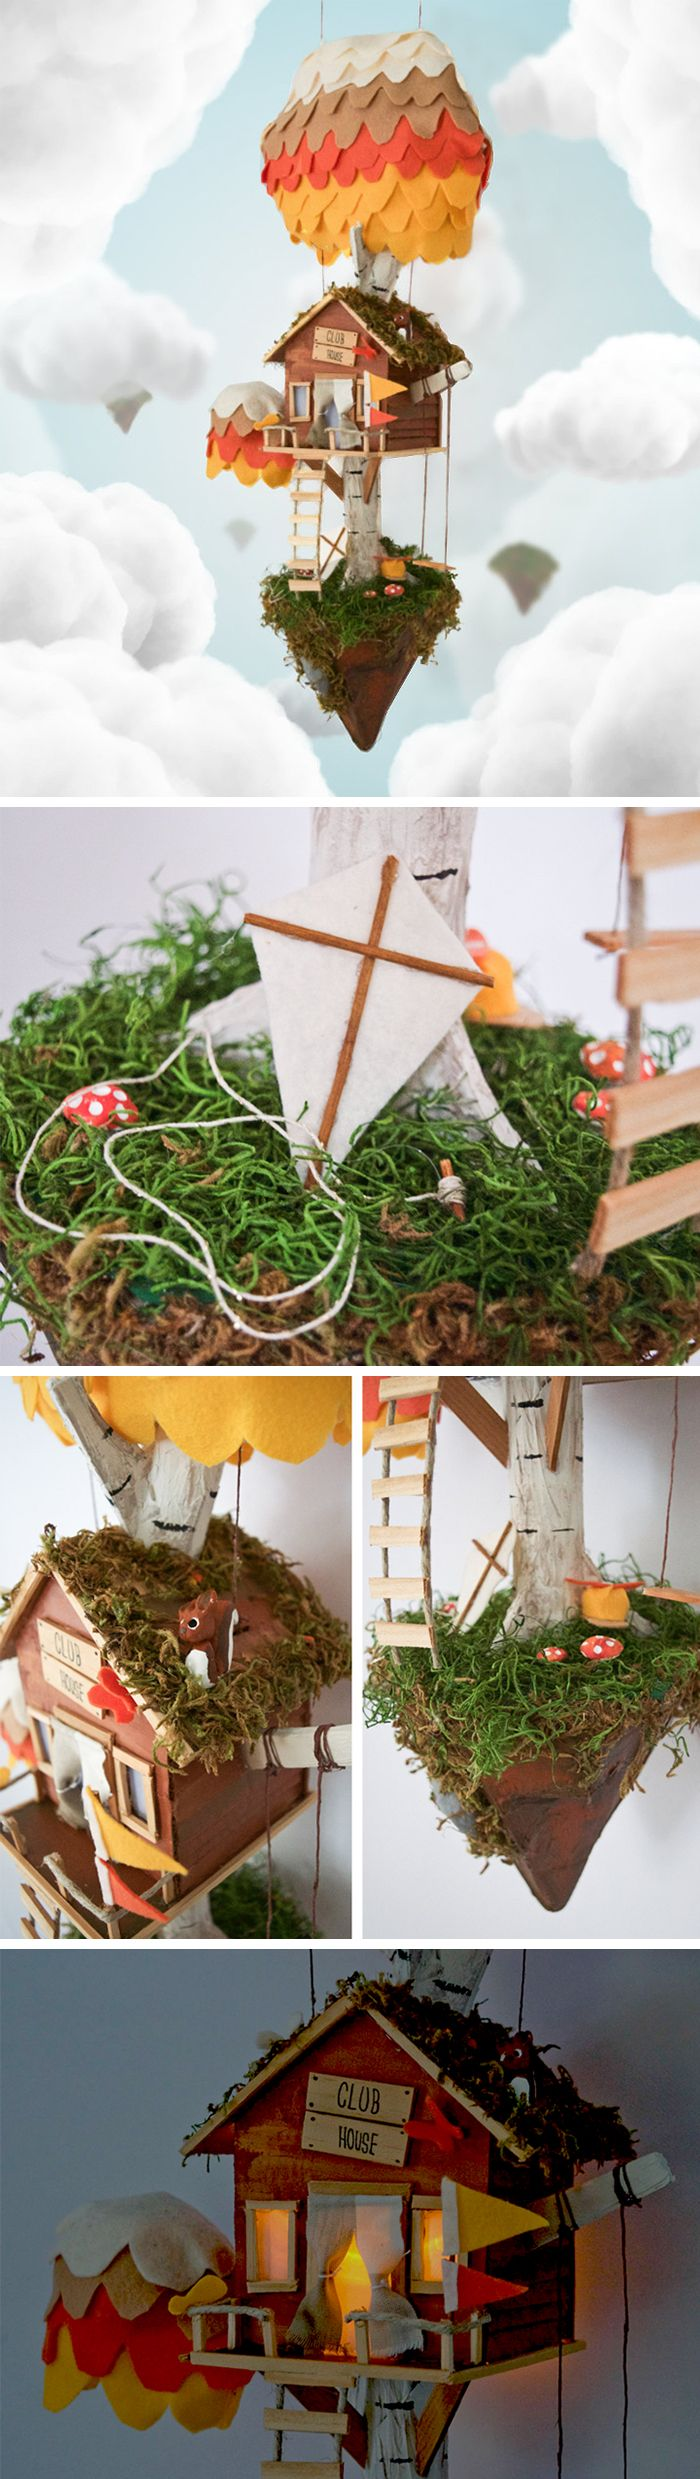 Floating Island Tree House | Nursery Decor | Cute Bedroom Nightlight | With a little magic and a gust of wind, this adorable floating island treehouse will soar in to give your nursery, kids room, or reading nook a delightful touch of whimsy. The windows and door give a soft glow at night using the small battery-operated LED. By DaydreamHunter on Etsy.